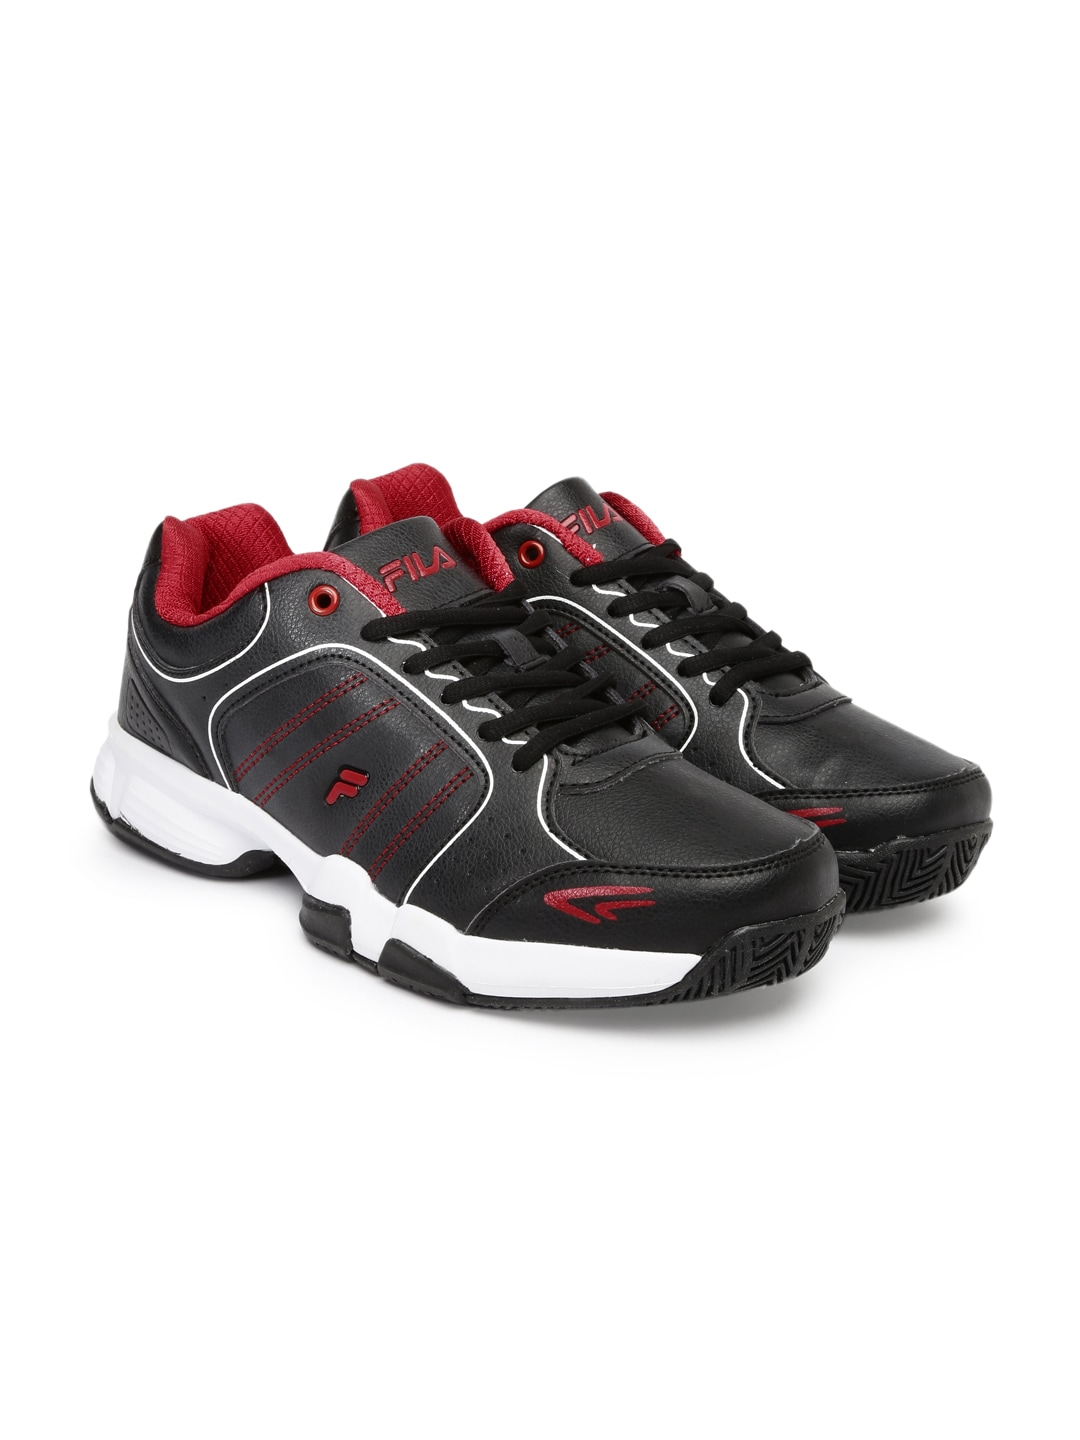 Fila Sports Shoes  e1bb2a7fa